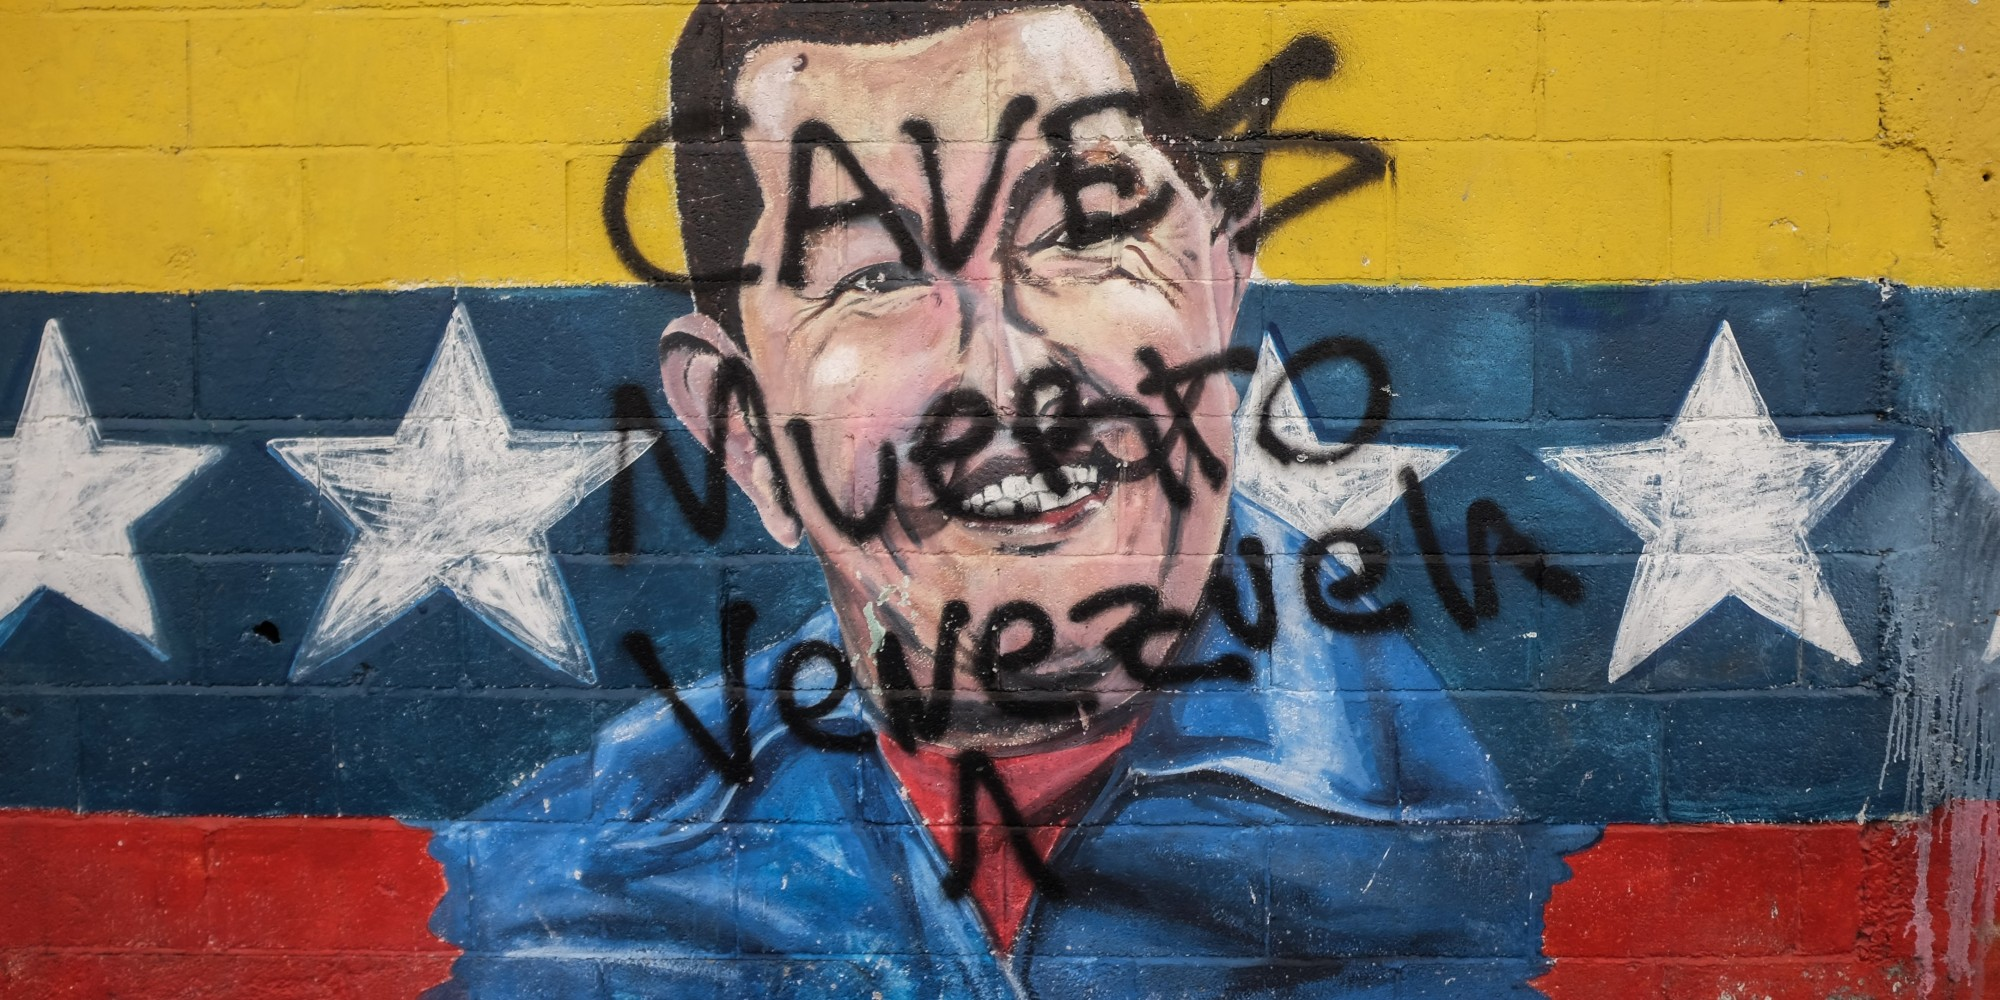 Picture of a graffiti depicting late Venezuelan President (1999-2013) Hugo Chavez, taken in Caracas on November 2, 2015.    AFP PHOTO / FEDERICO PARRA        (Photo credit should read FEDERICO PARRA/AFP/Getty Images)